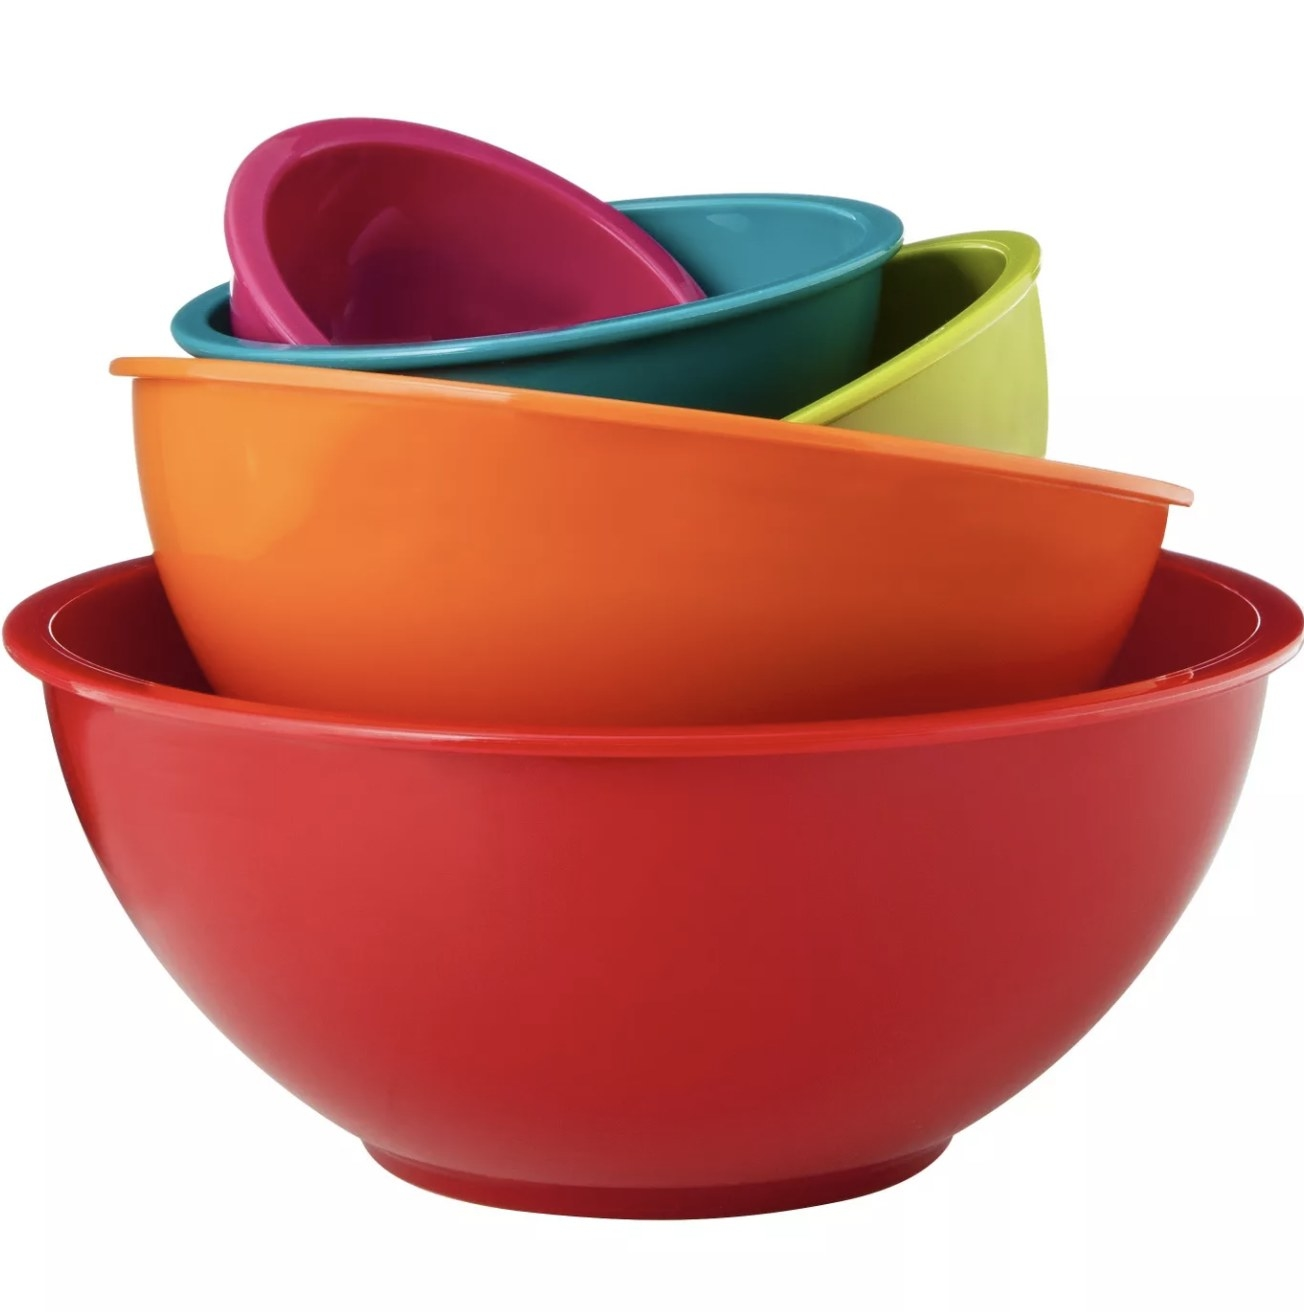 the set of mixing bowls